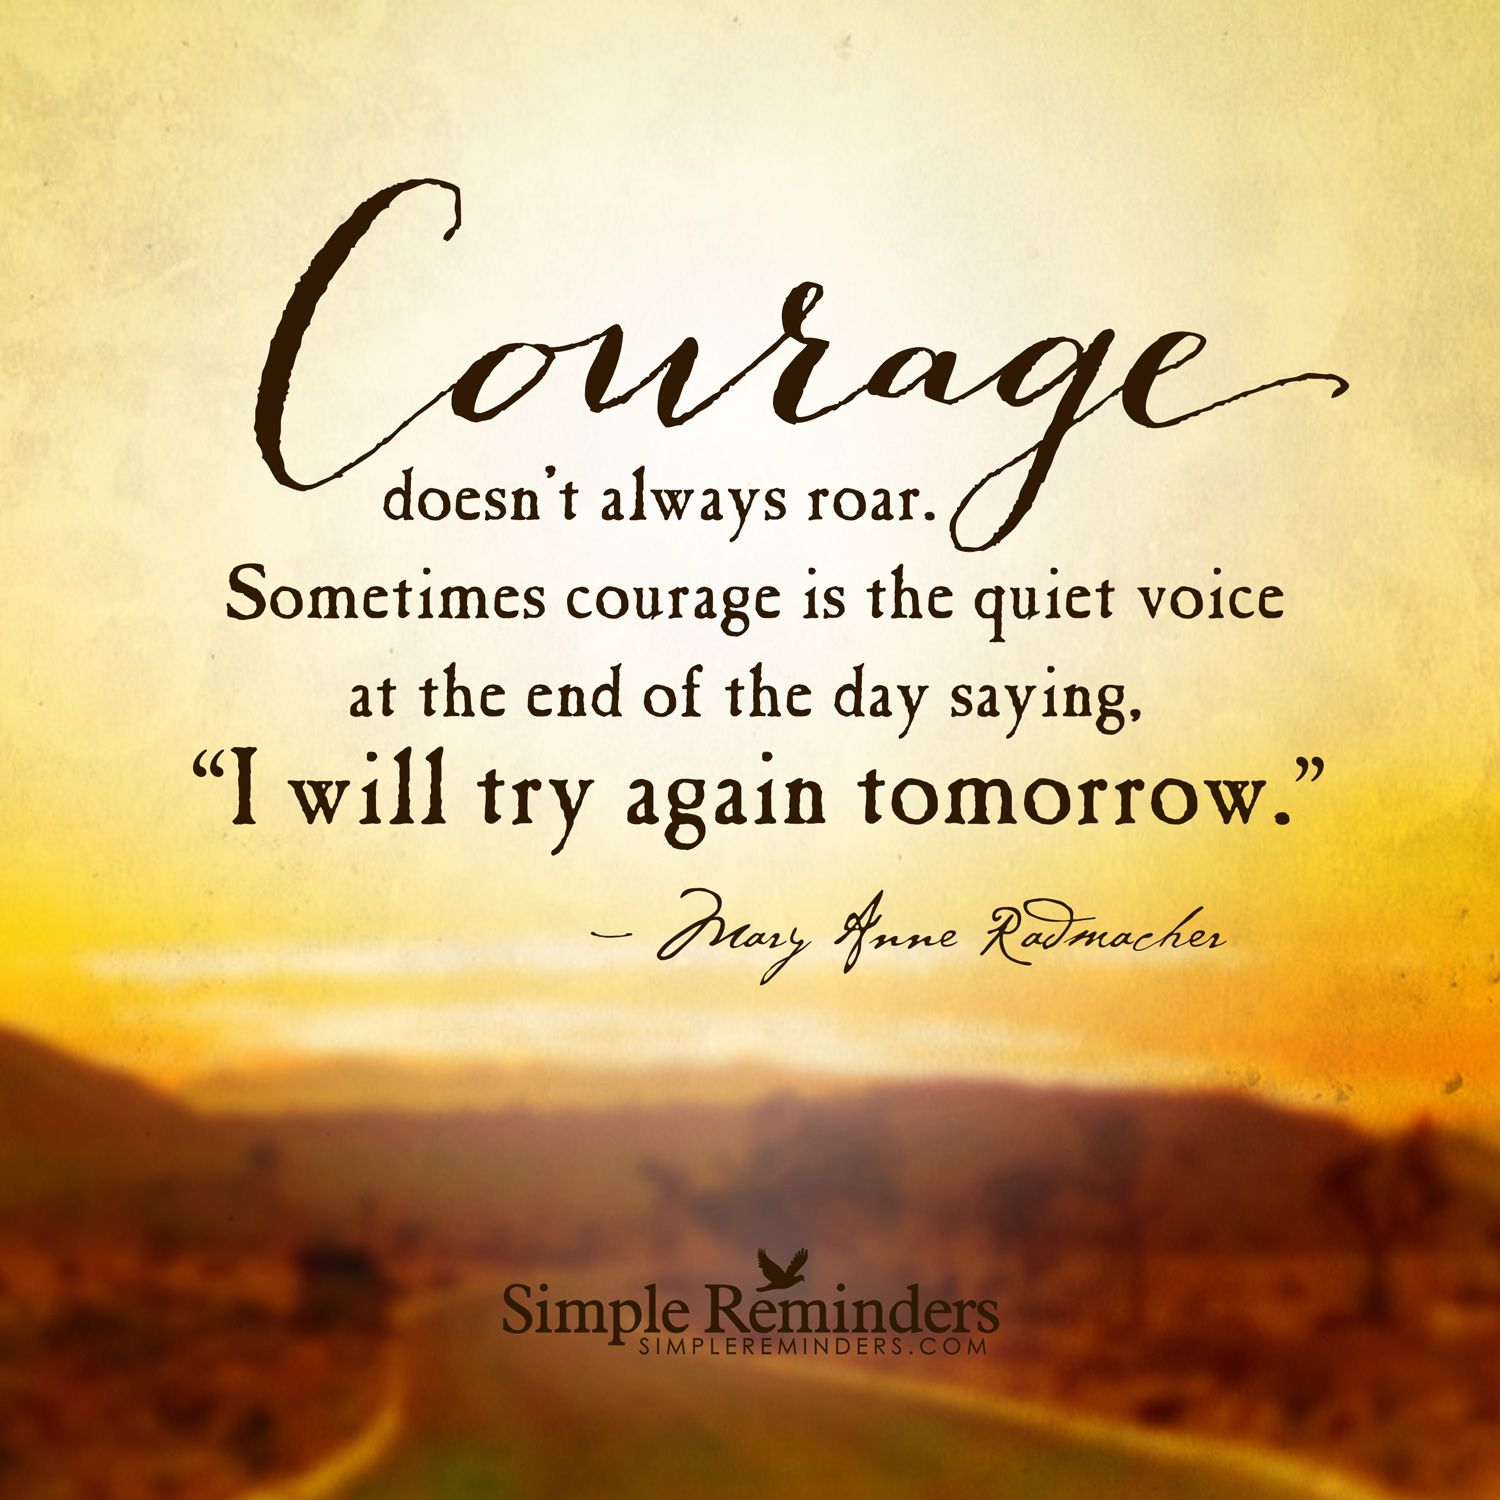 Spiritual Quotes Motivational: Tiny Steps Of Courage